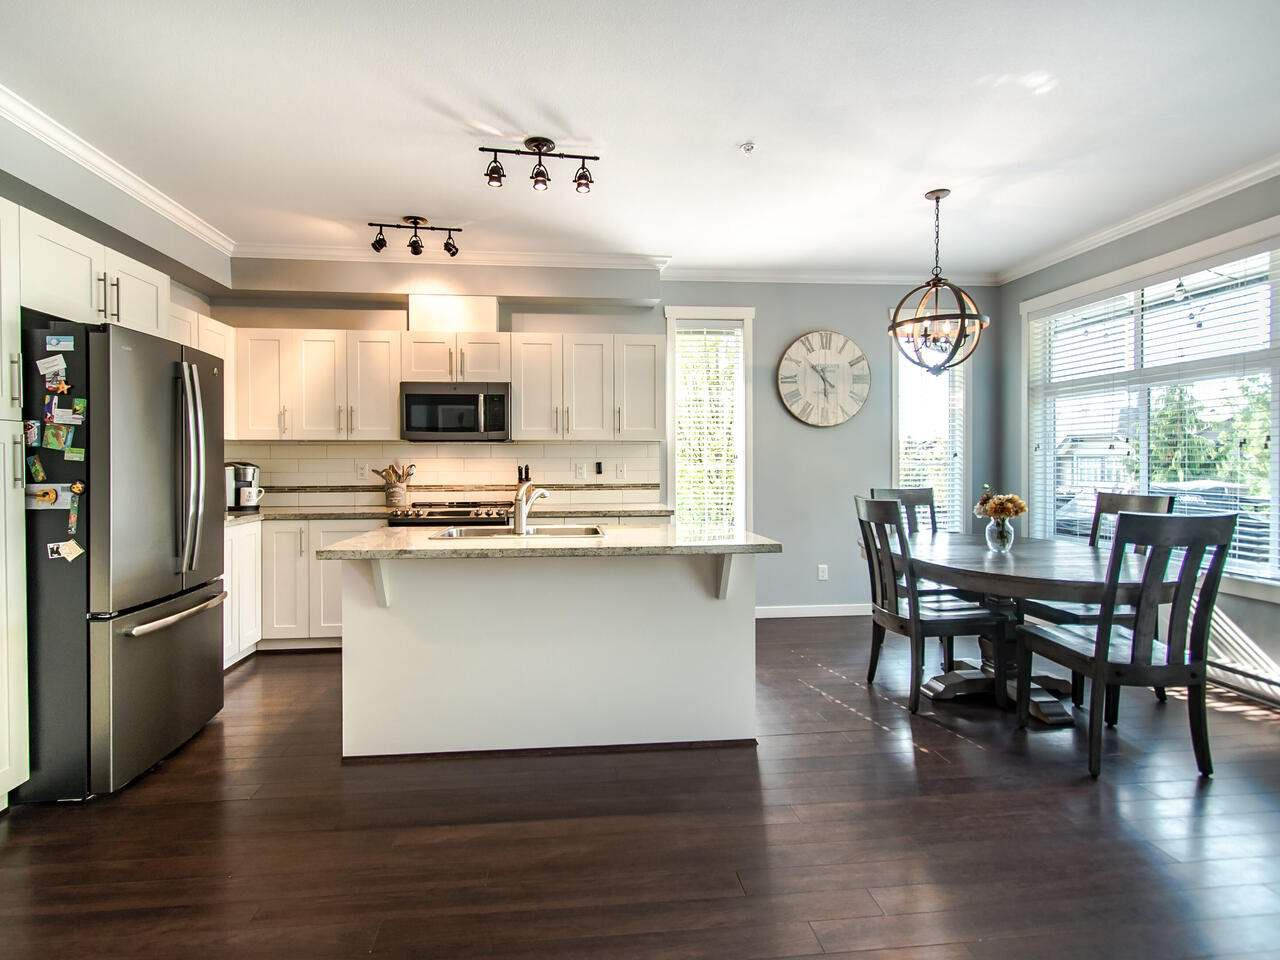 """Main Photo: 3 13819 232 Street in Maple Ridge: Silver Valley Townhouse for sale in """"BRIGHTON"""" : MLS®# R2503896"""